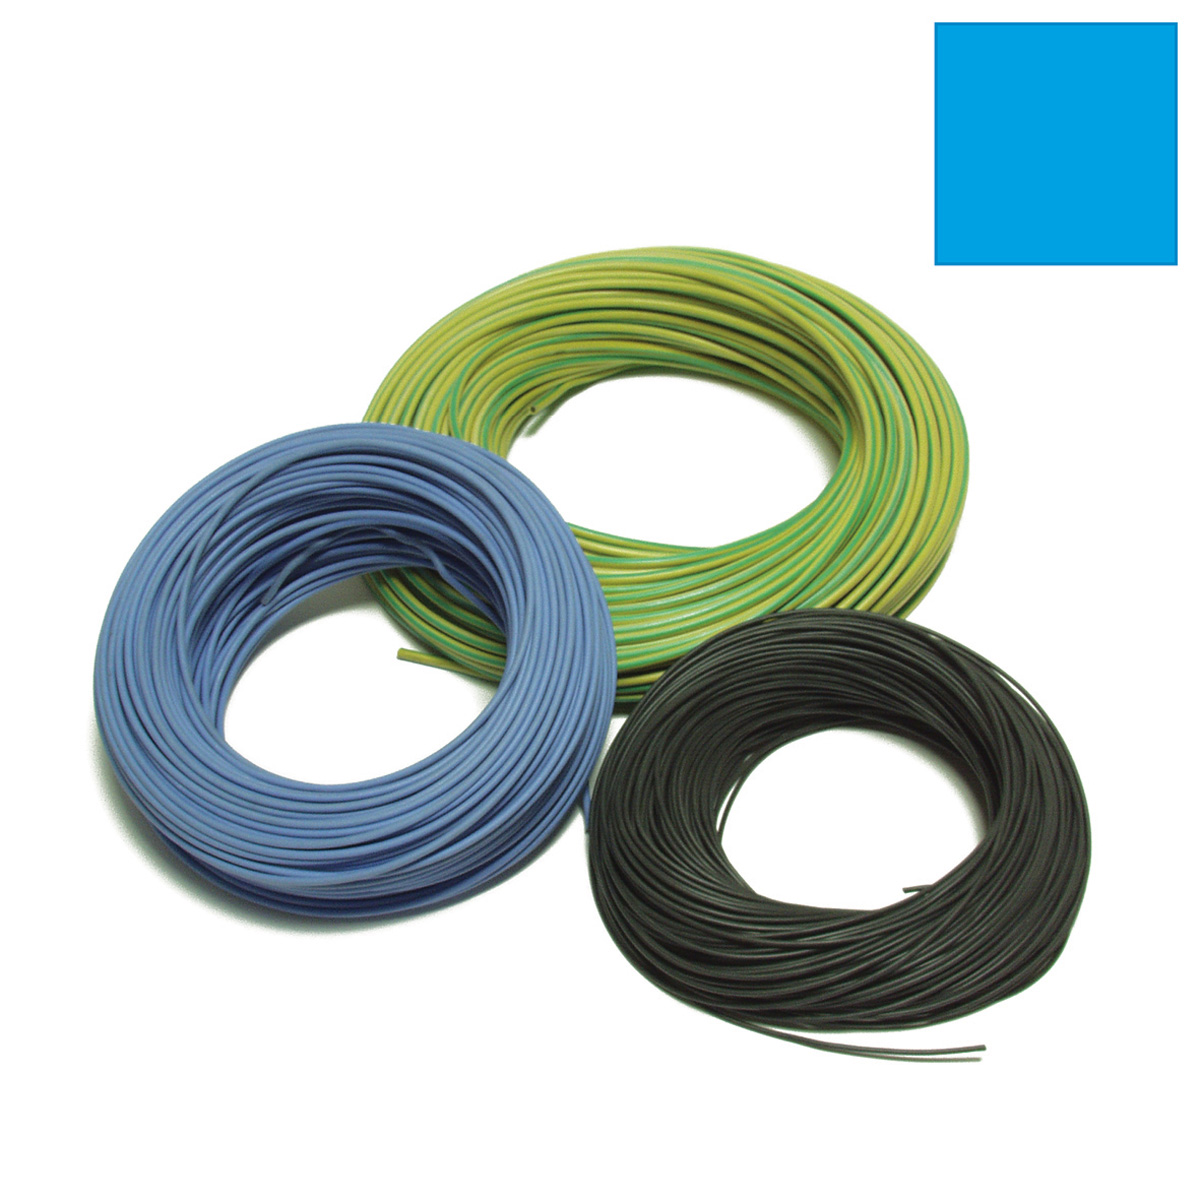 EPDM-SILICONE ELECTRIC CABLE mm 1x2,5 SKY BLUE , Stiro Service s r l